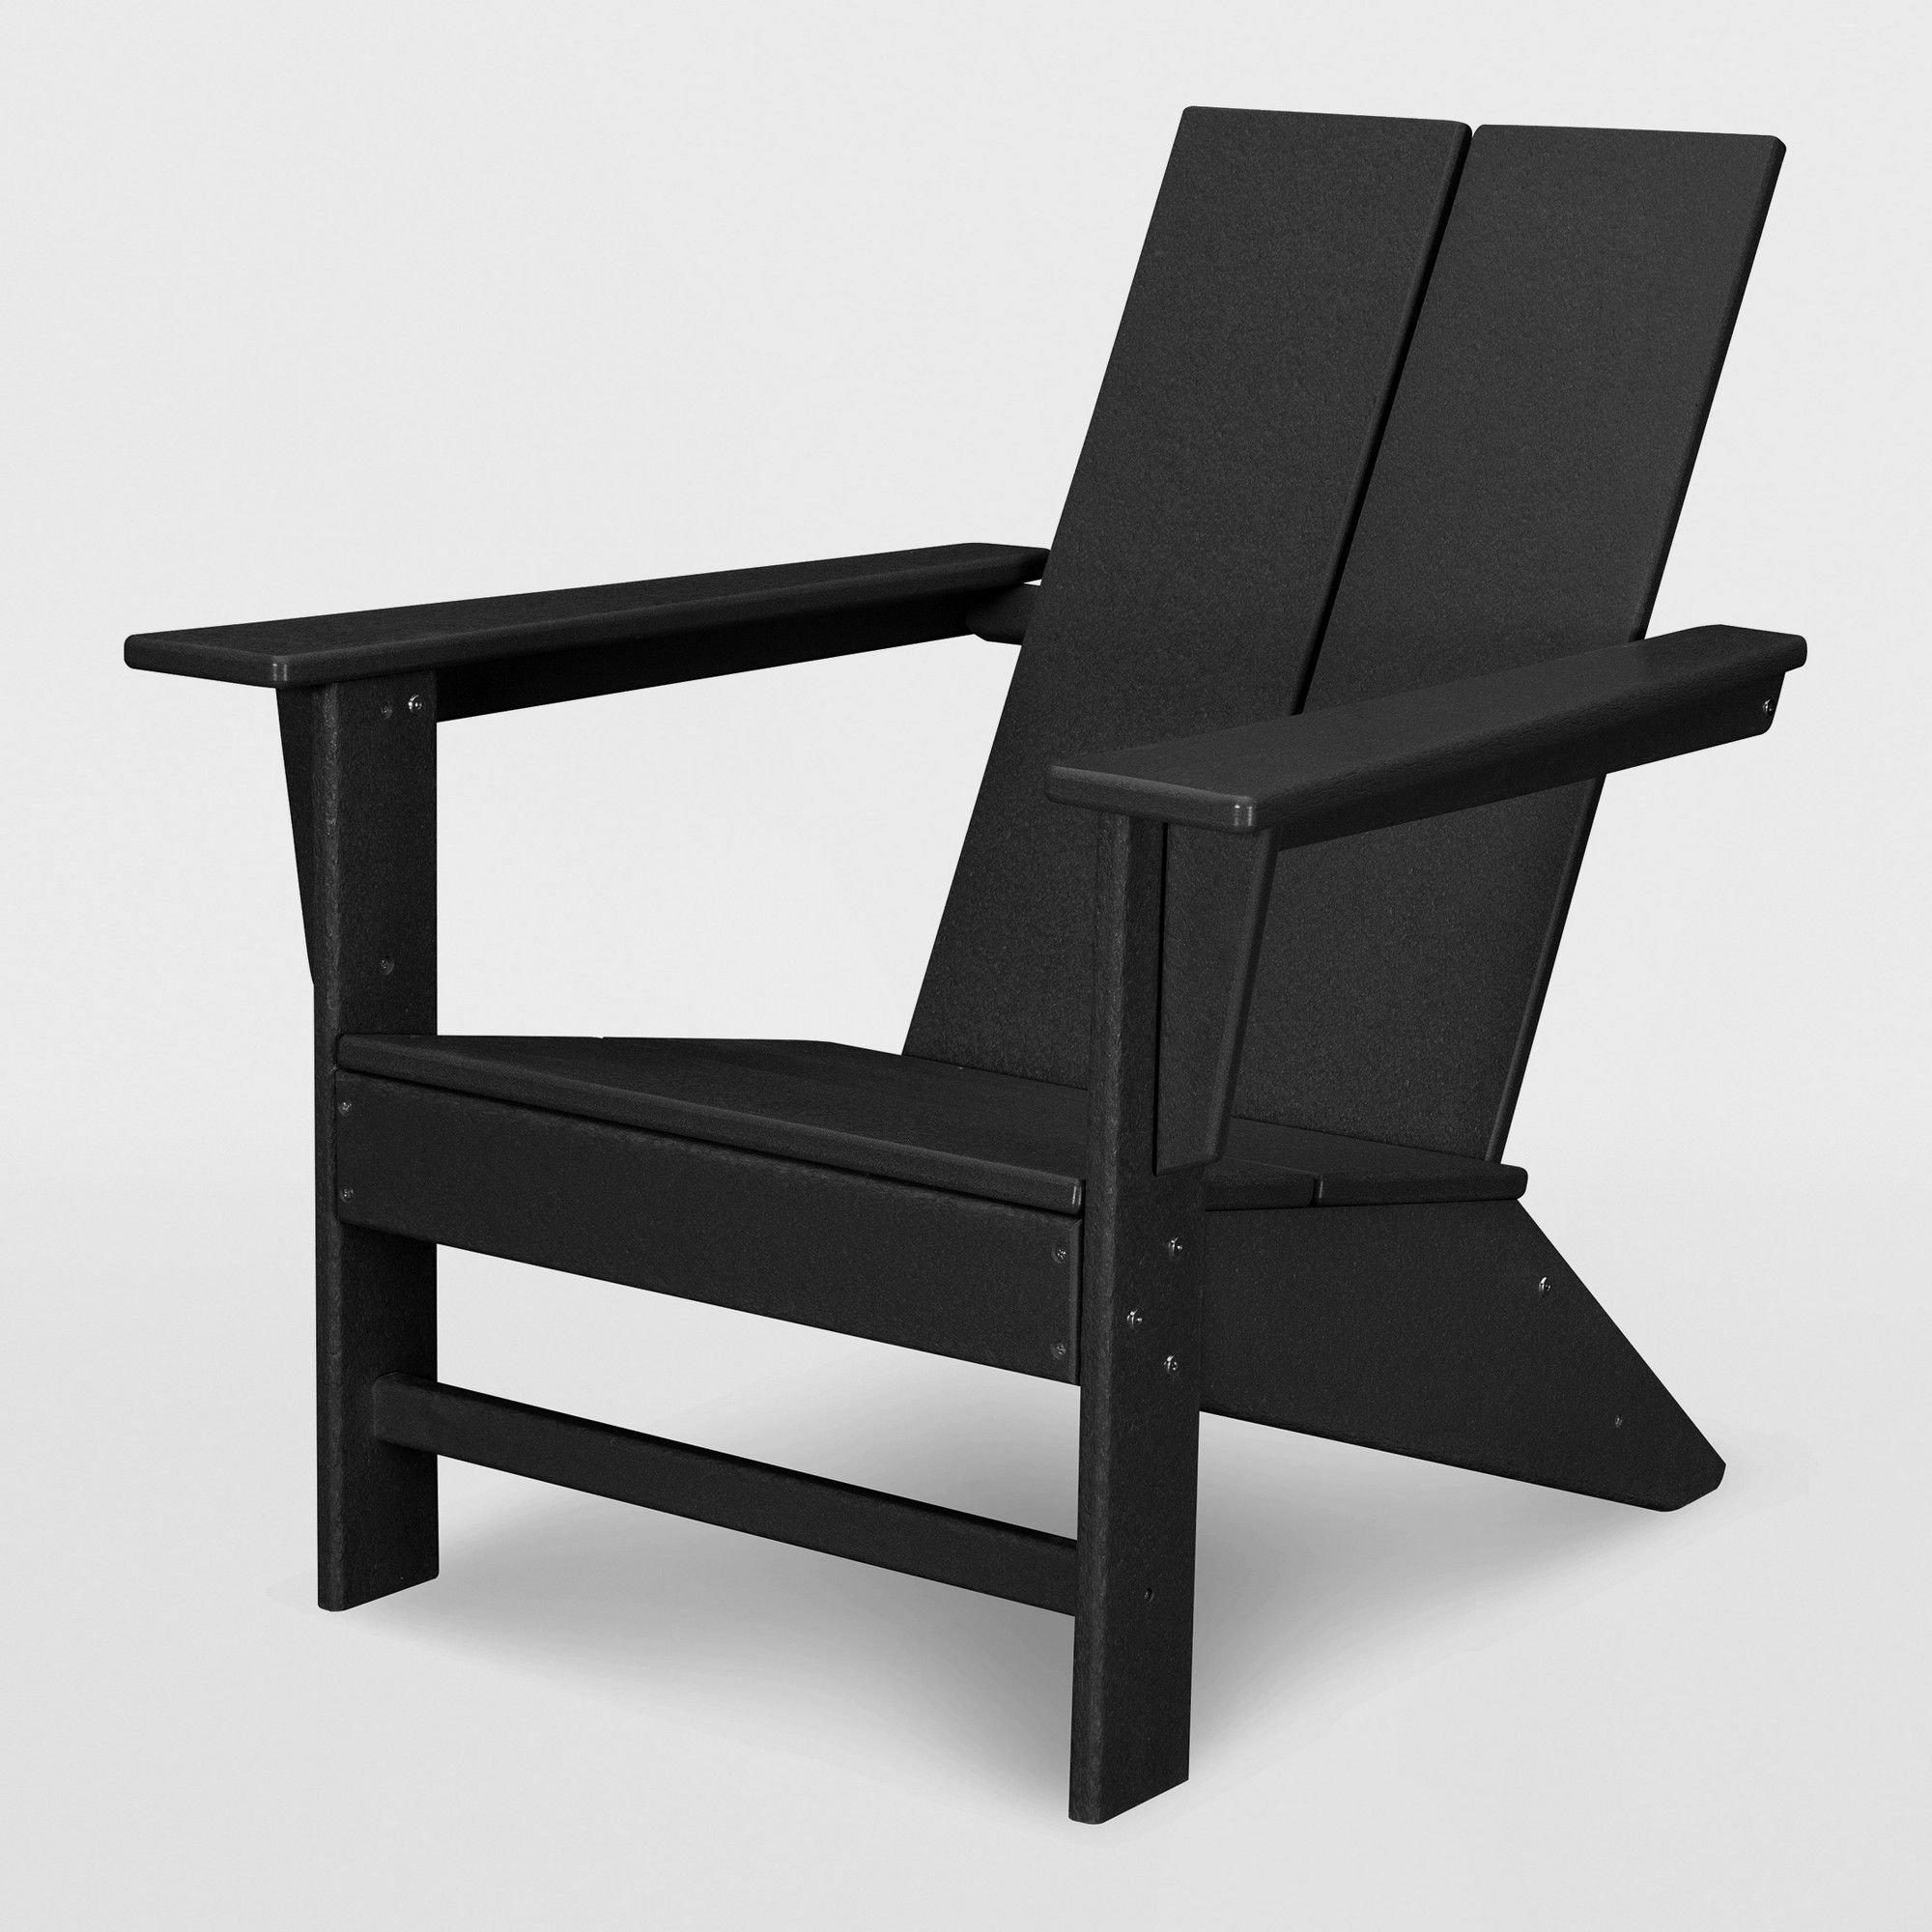 Moore POLYWOOD Adirondack Chair Black Project 62